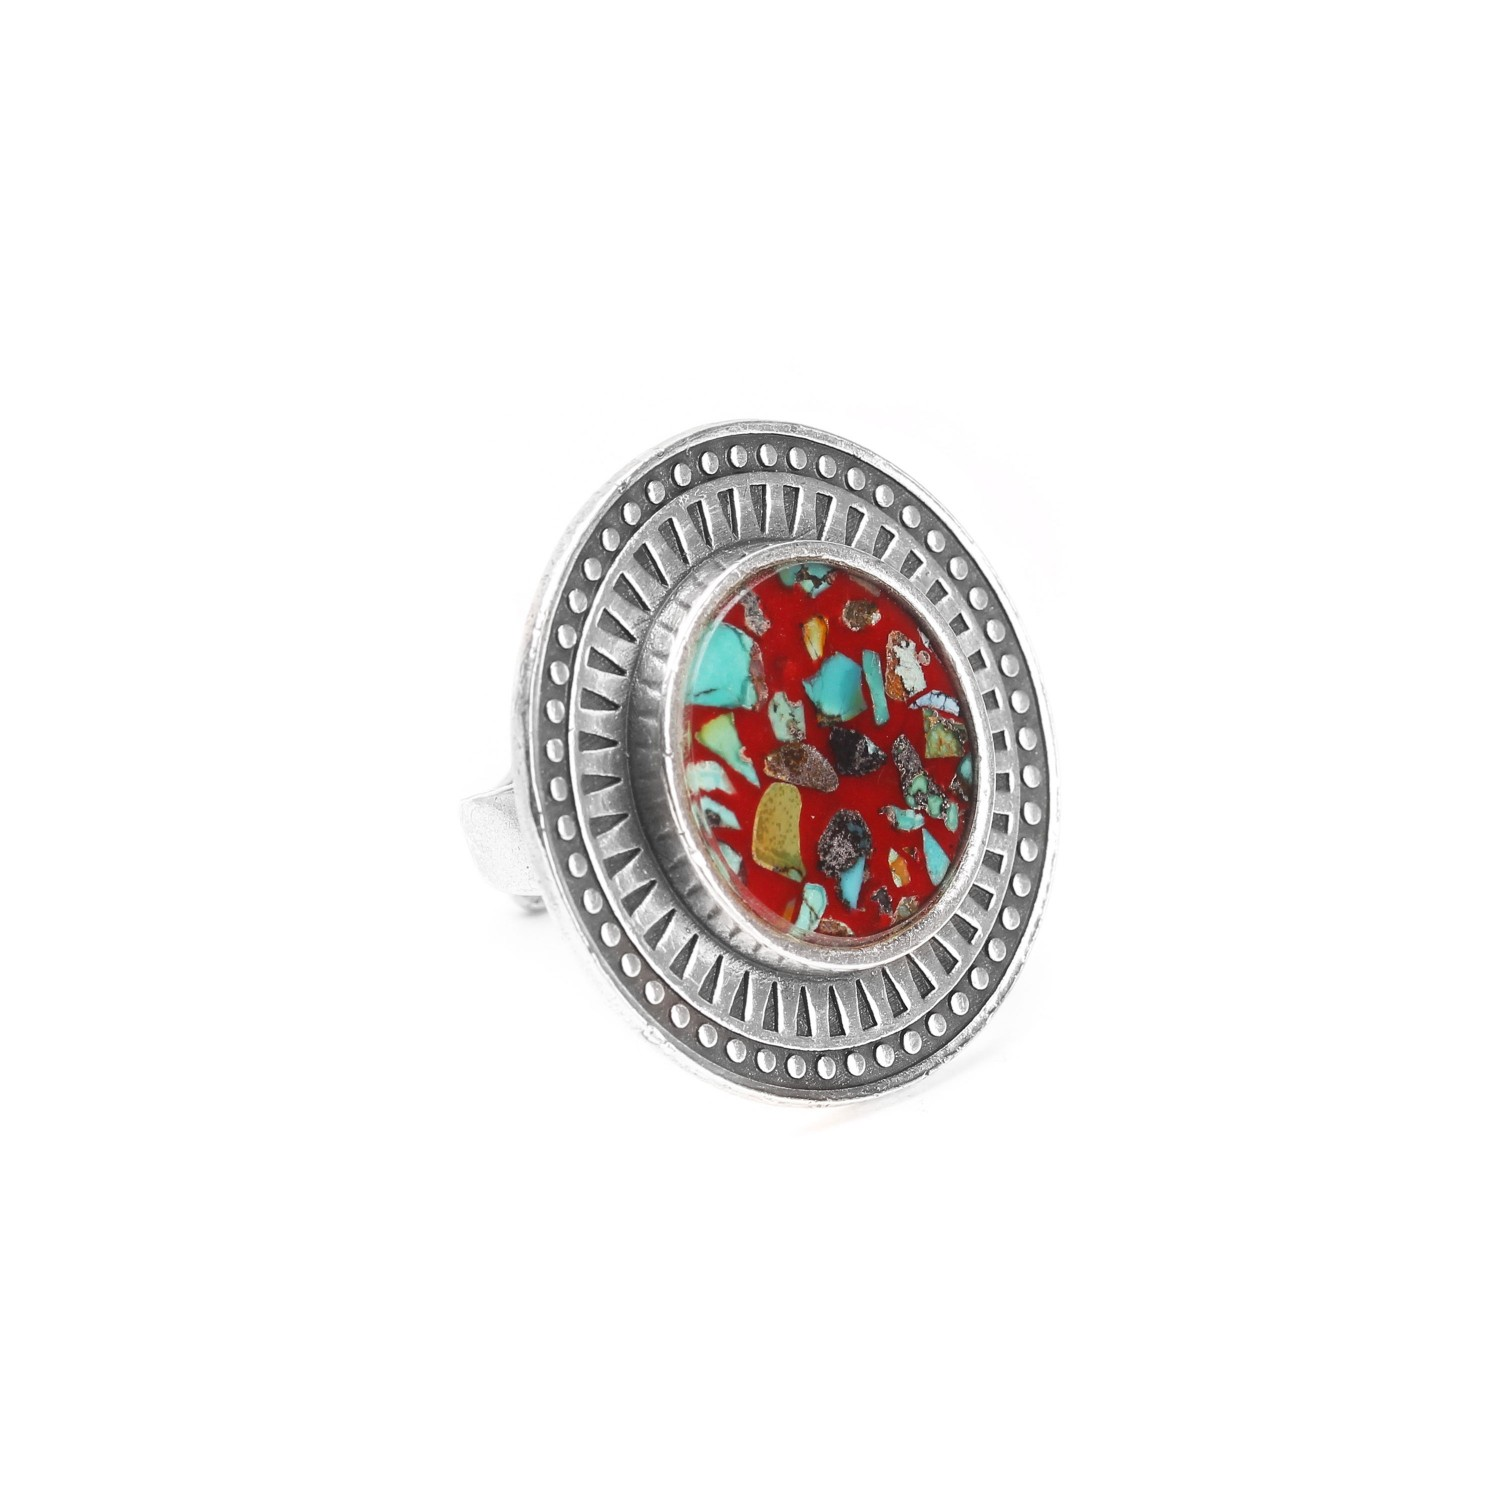 KATMANDOU round ring w/red center